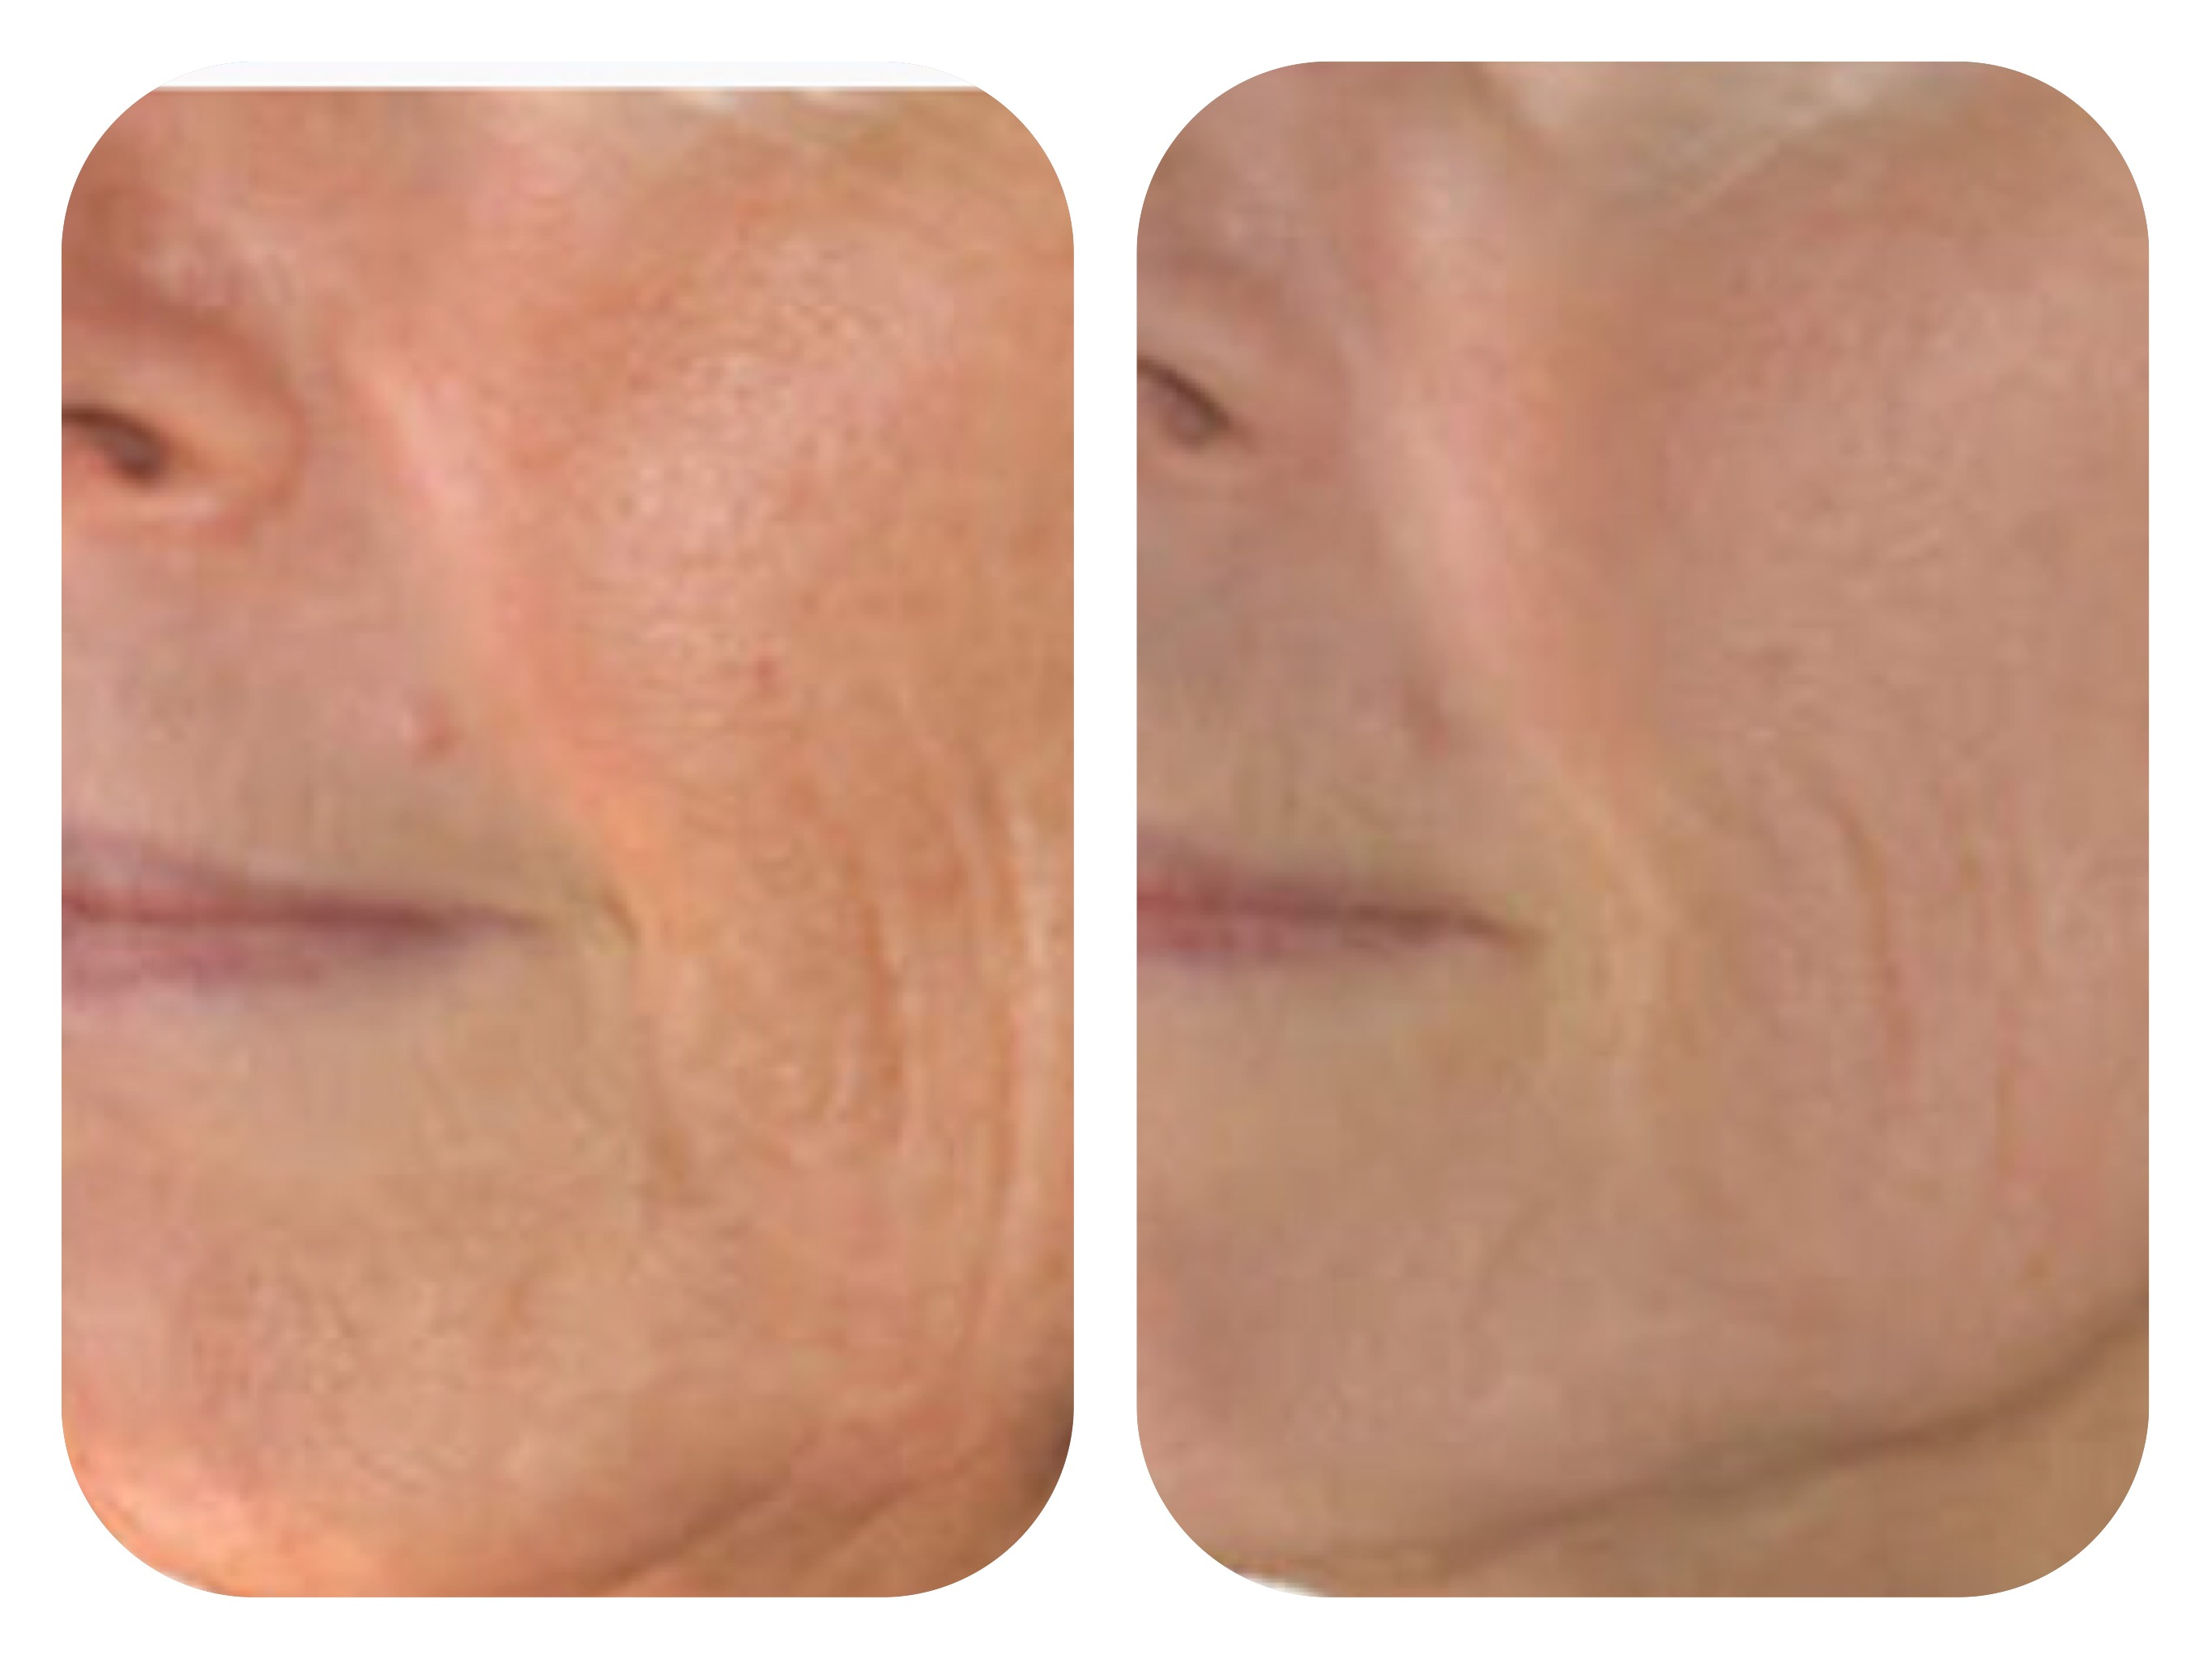 rf treatment before and after